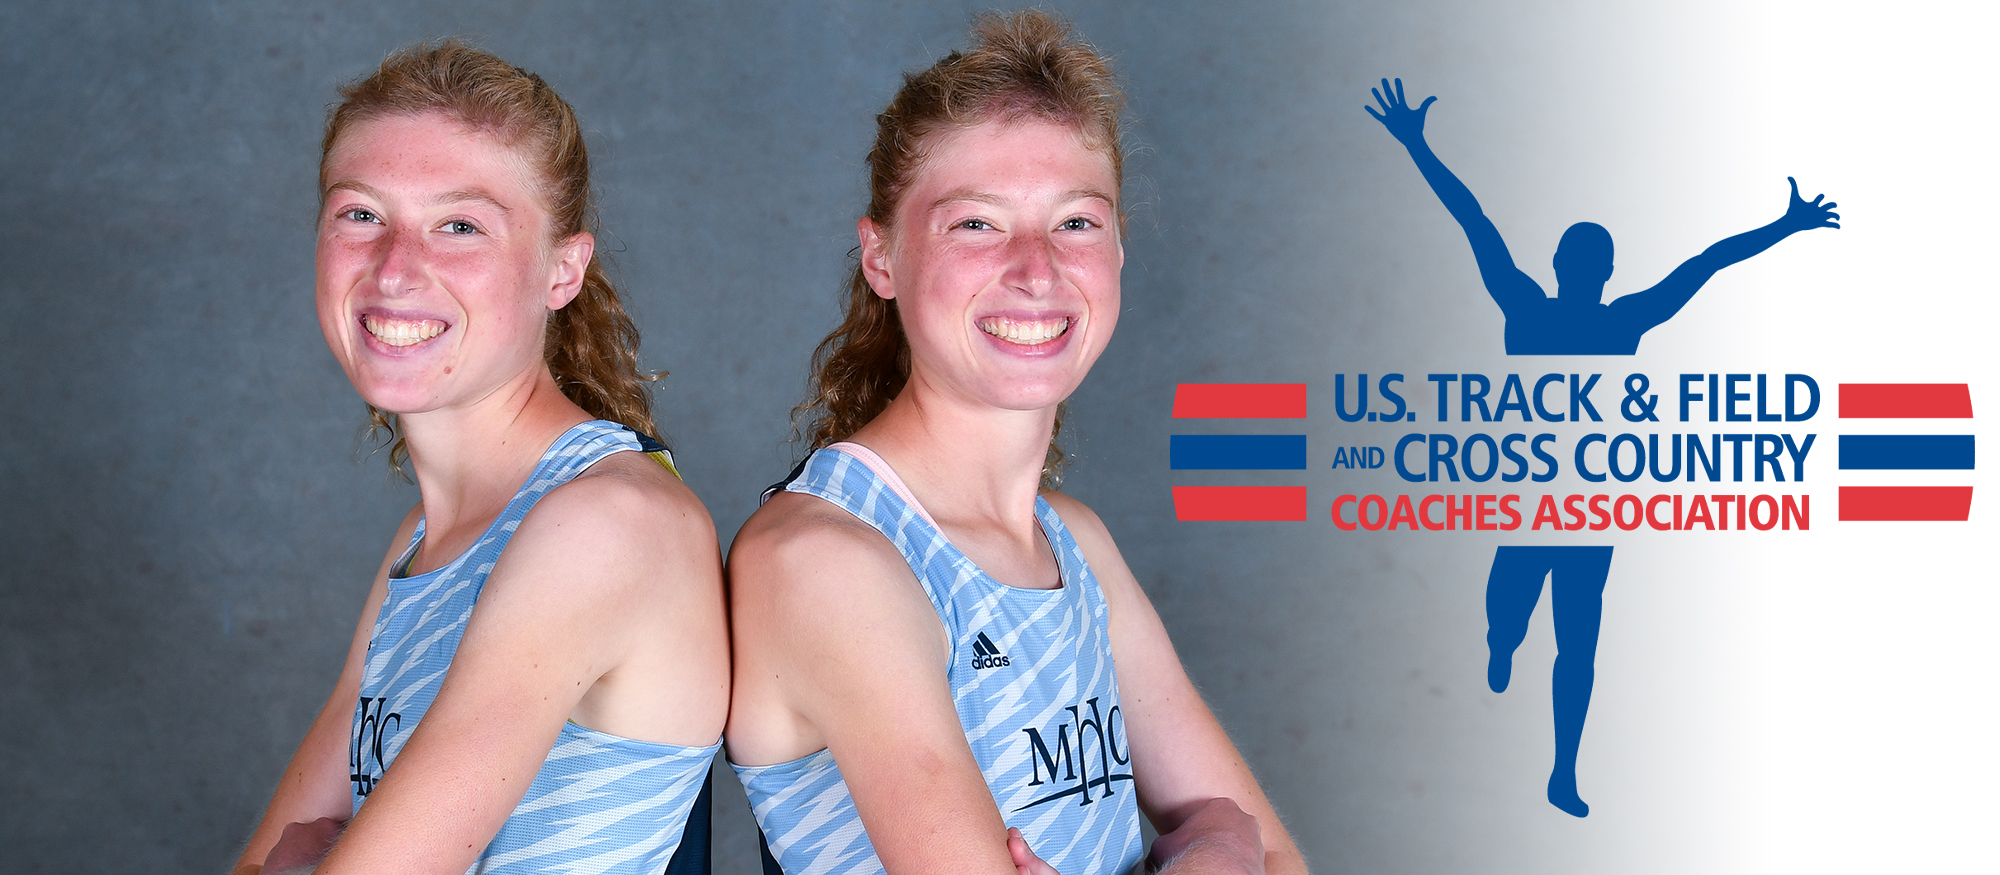 Hannah and Madeline Rieders Earn USTFCCCA Division III Track and Field All-America Honors